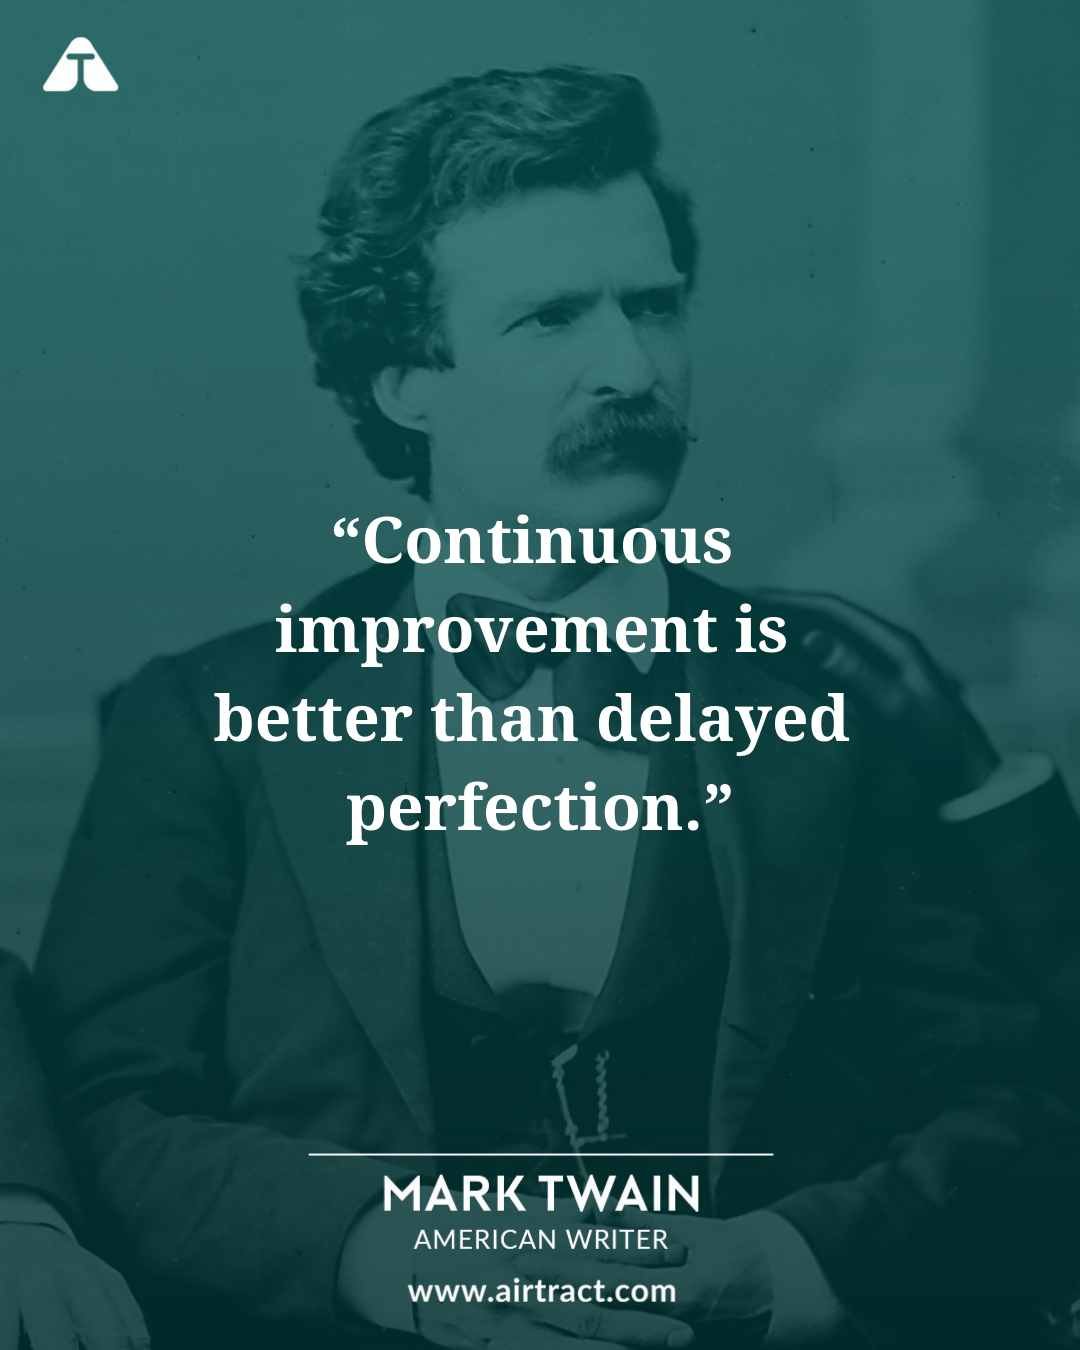 Top 20 Inspirational Mark Twain Quotes And Sayings | AirTract